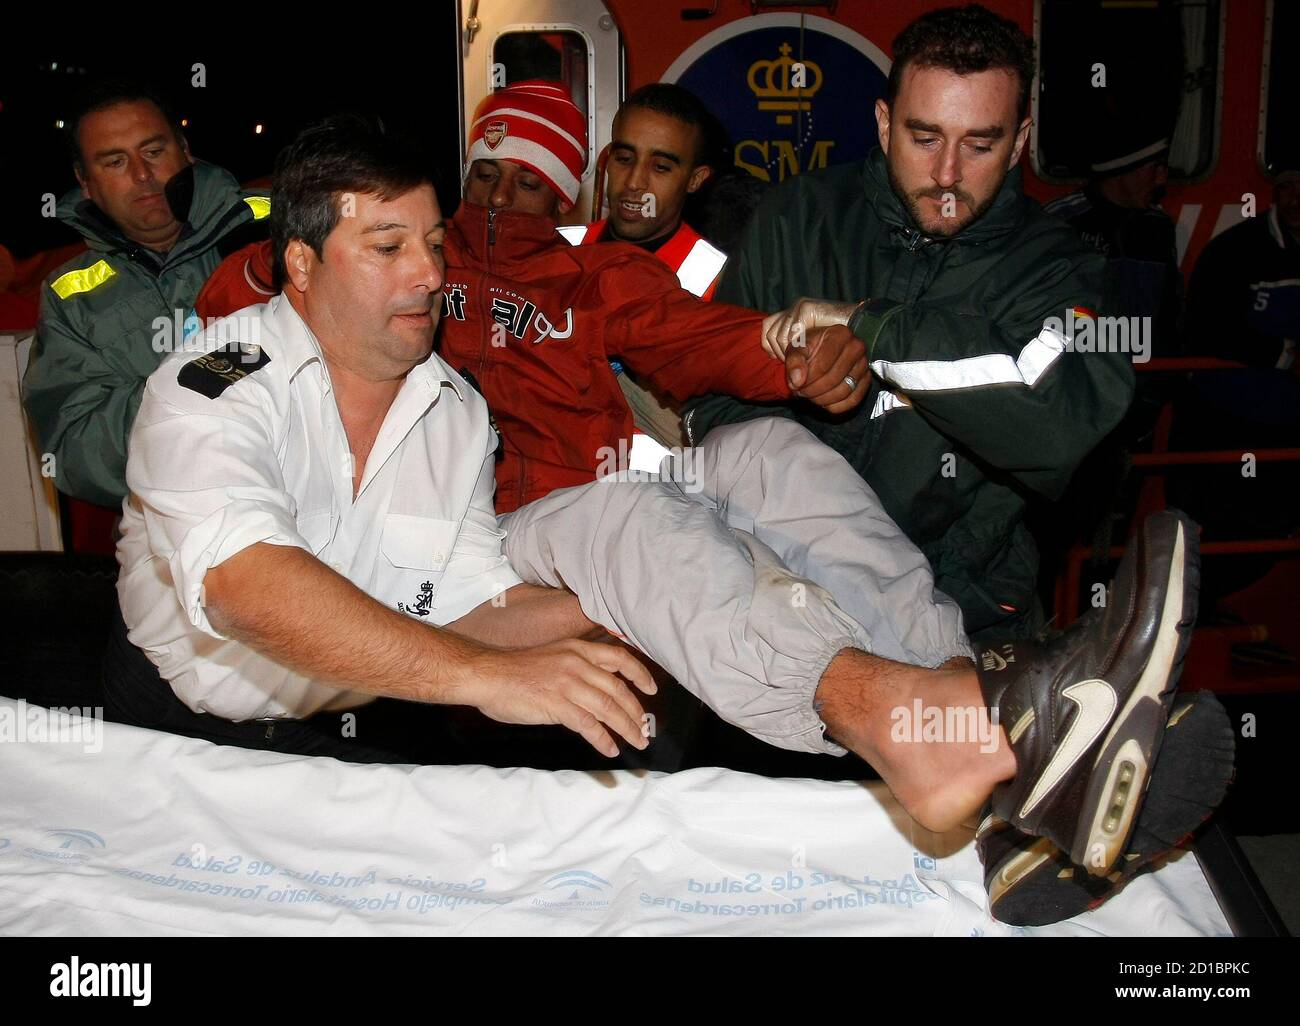 A would-be immigrant is carried by members of the Spanish Civil Guard and Red Cross after arriving at the port of Almeria November 16, 2007. They were intercepted off the southern Spanish coast as they were heading to European soil from Africa, authorities said. REUTERS/Francisco Bonilla (SPAIN) Stock Photo